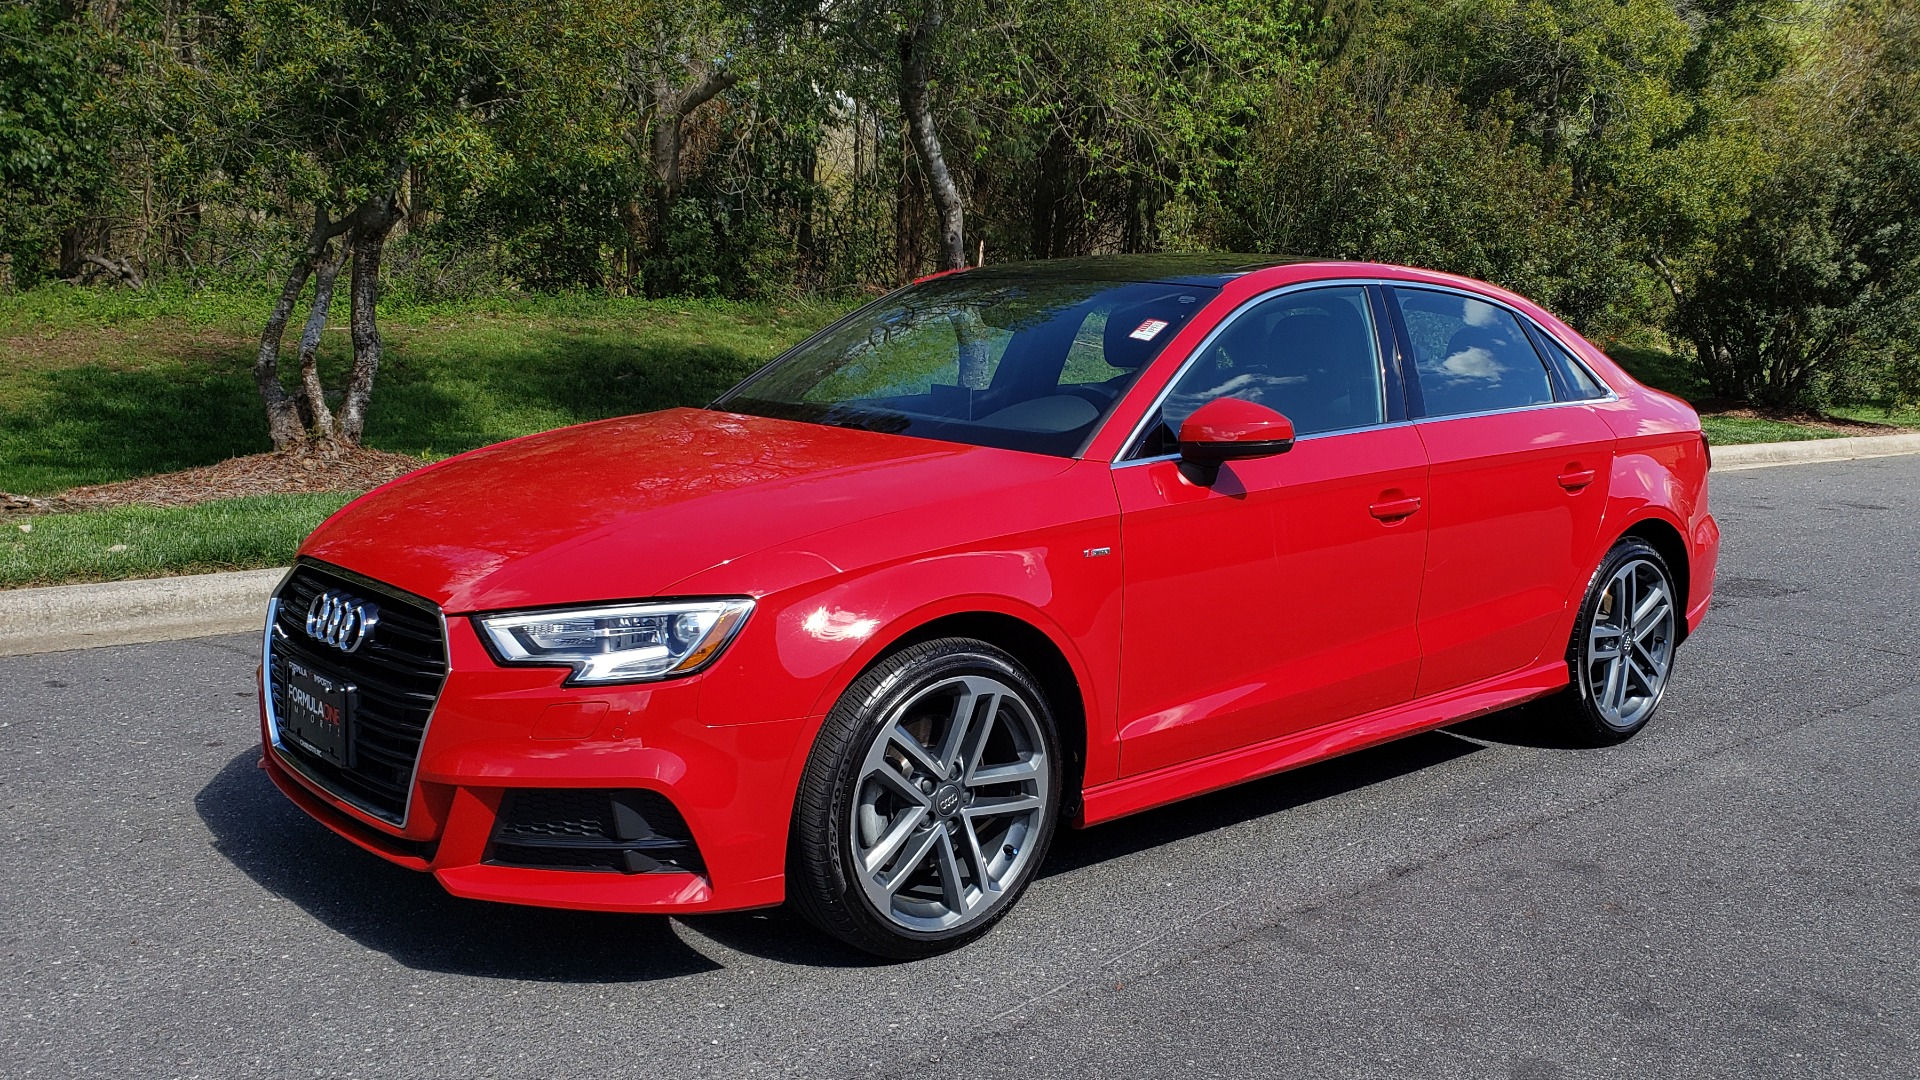 Used 2017 Audi A3 SEDAN PREMIUM PLUS / S-TRONIC / NAV / TECH / SUNROOF / REARVIEW for sale Sold at Formula Imports in Charlotte NC 28227 1